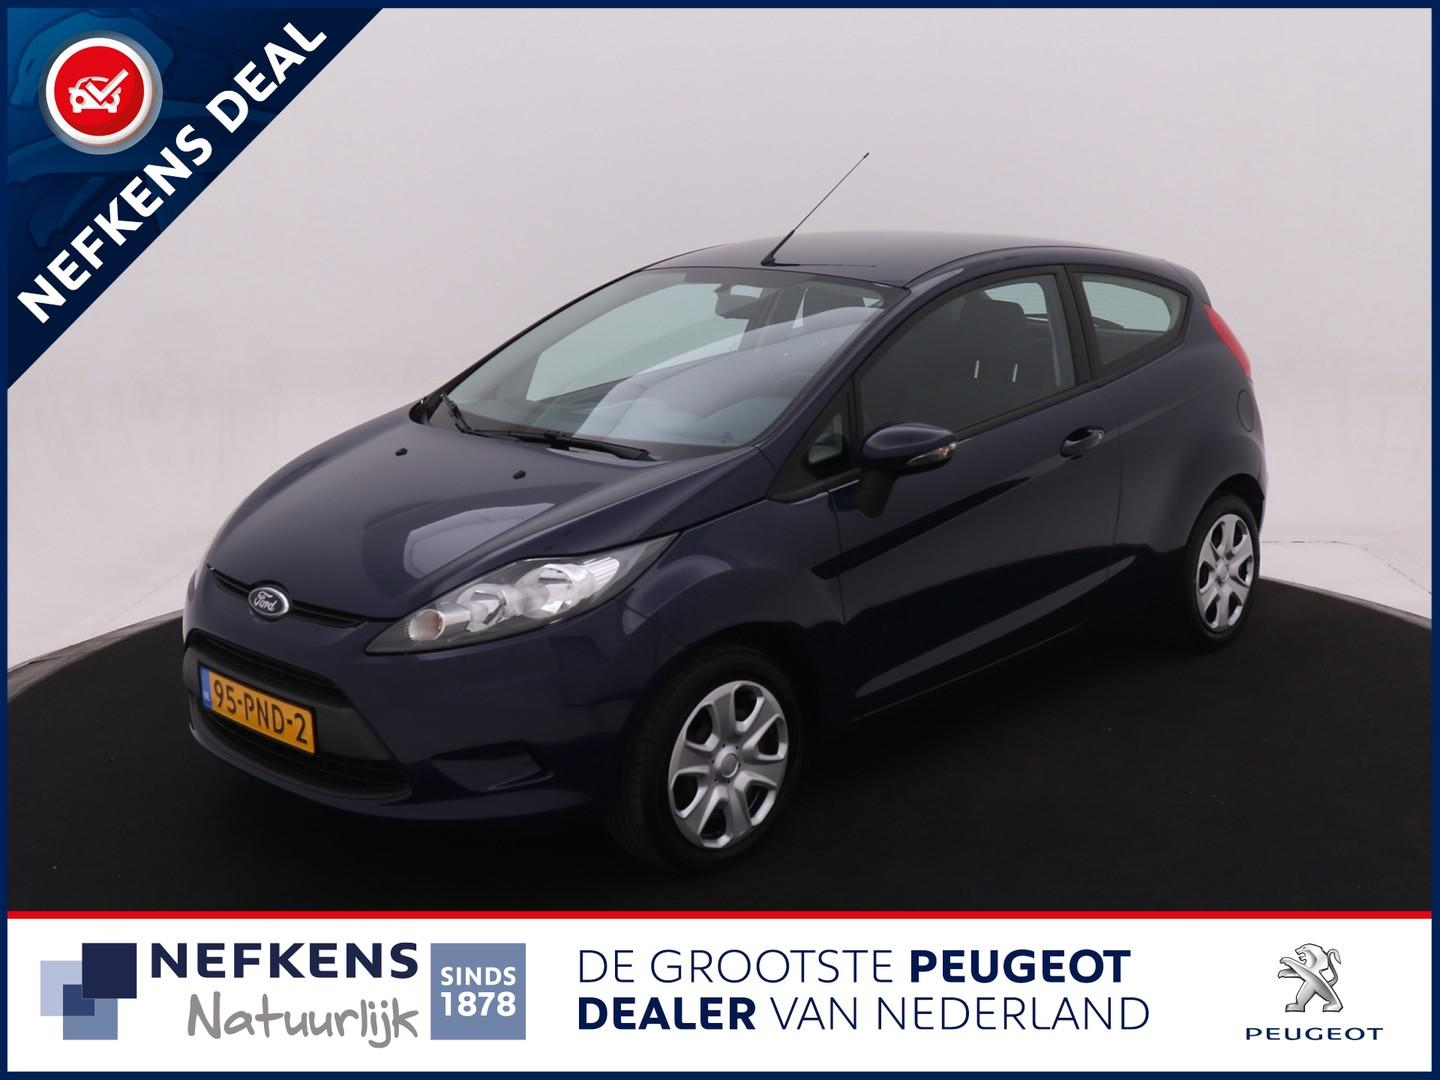 Ford Fiesta 1.2 60pk limited